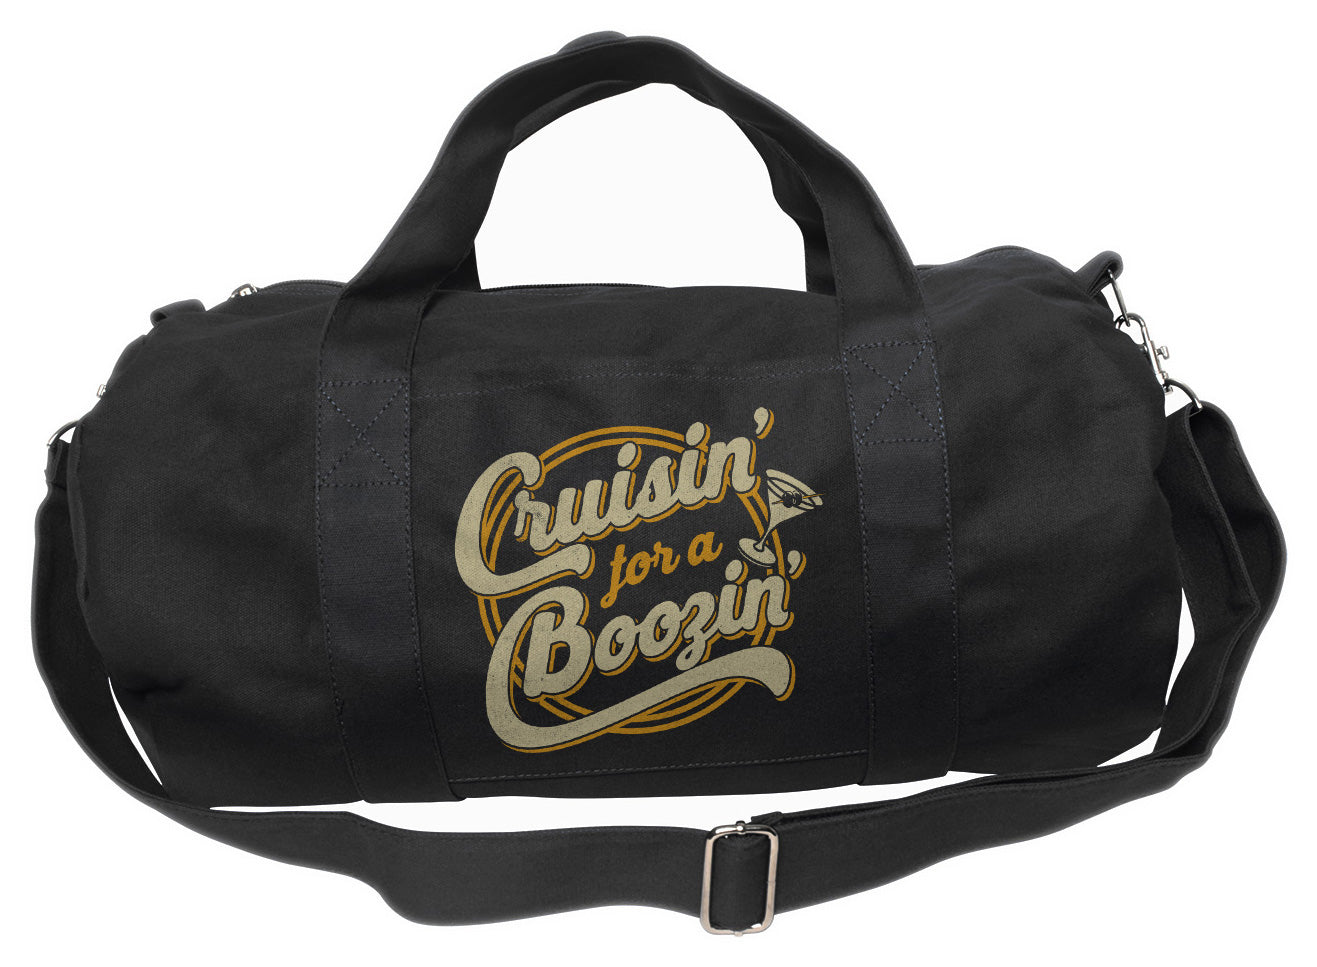 Cruisin for a Boozin Duffel Bag